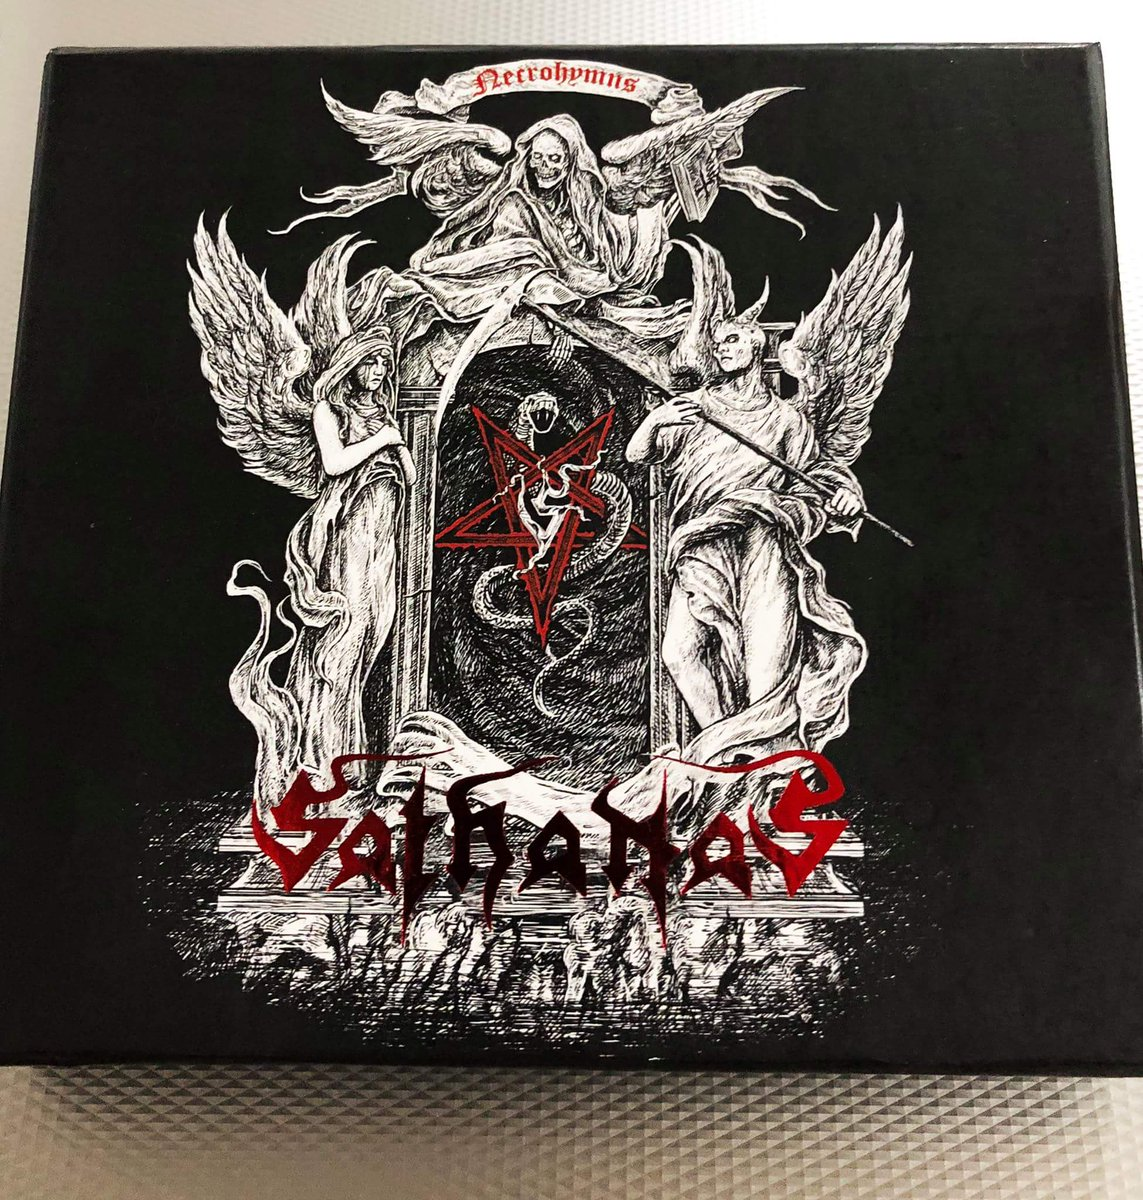 Box Set For Their Newest Album Heres A Link Its Autographed And Comes With Band Patch Guitar Pick Coaster Magnet As Well Digipak Version